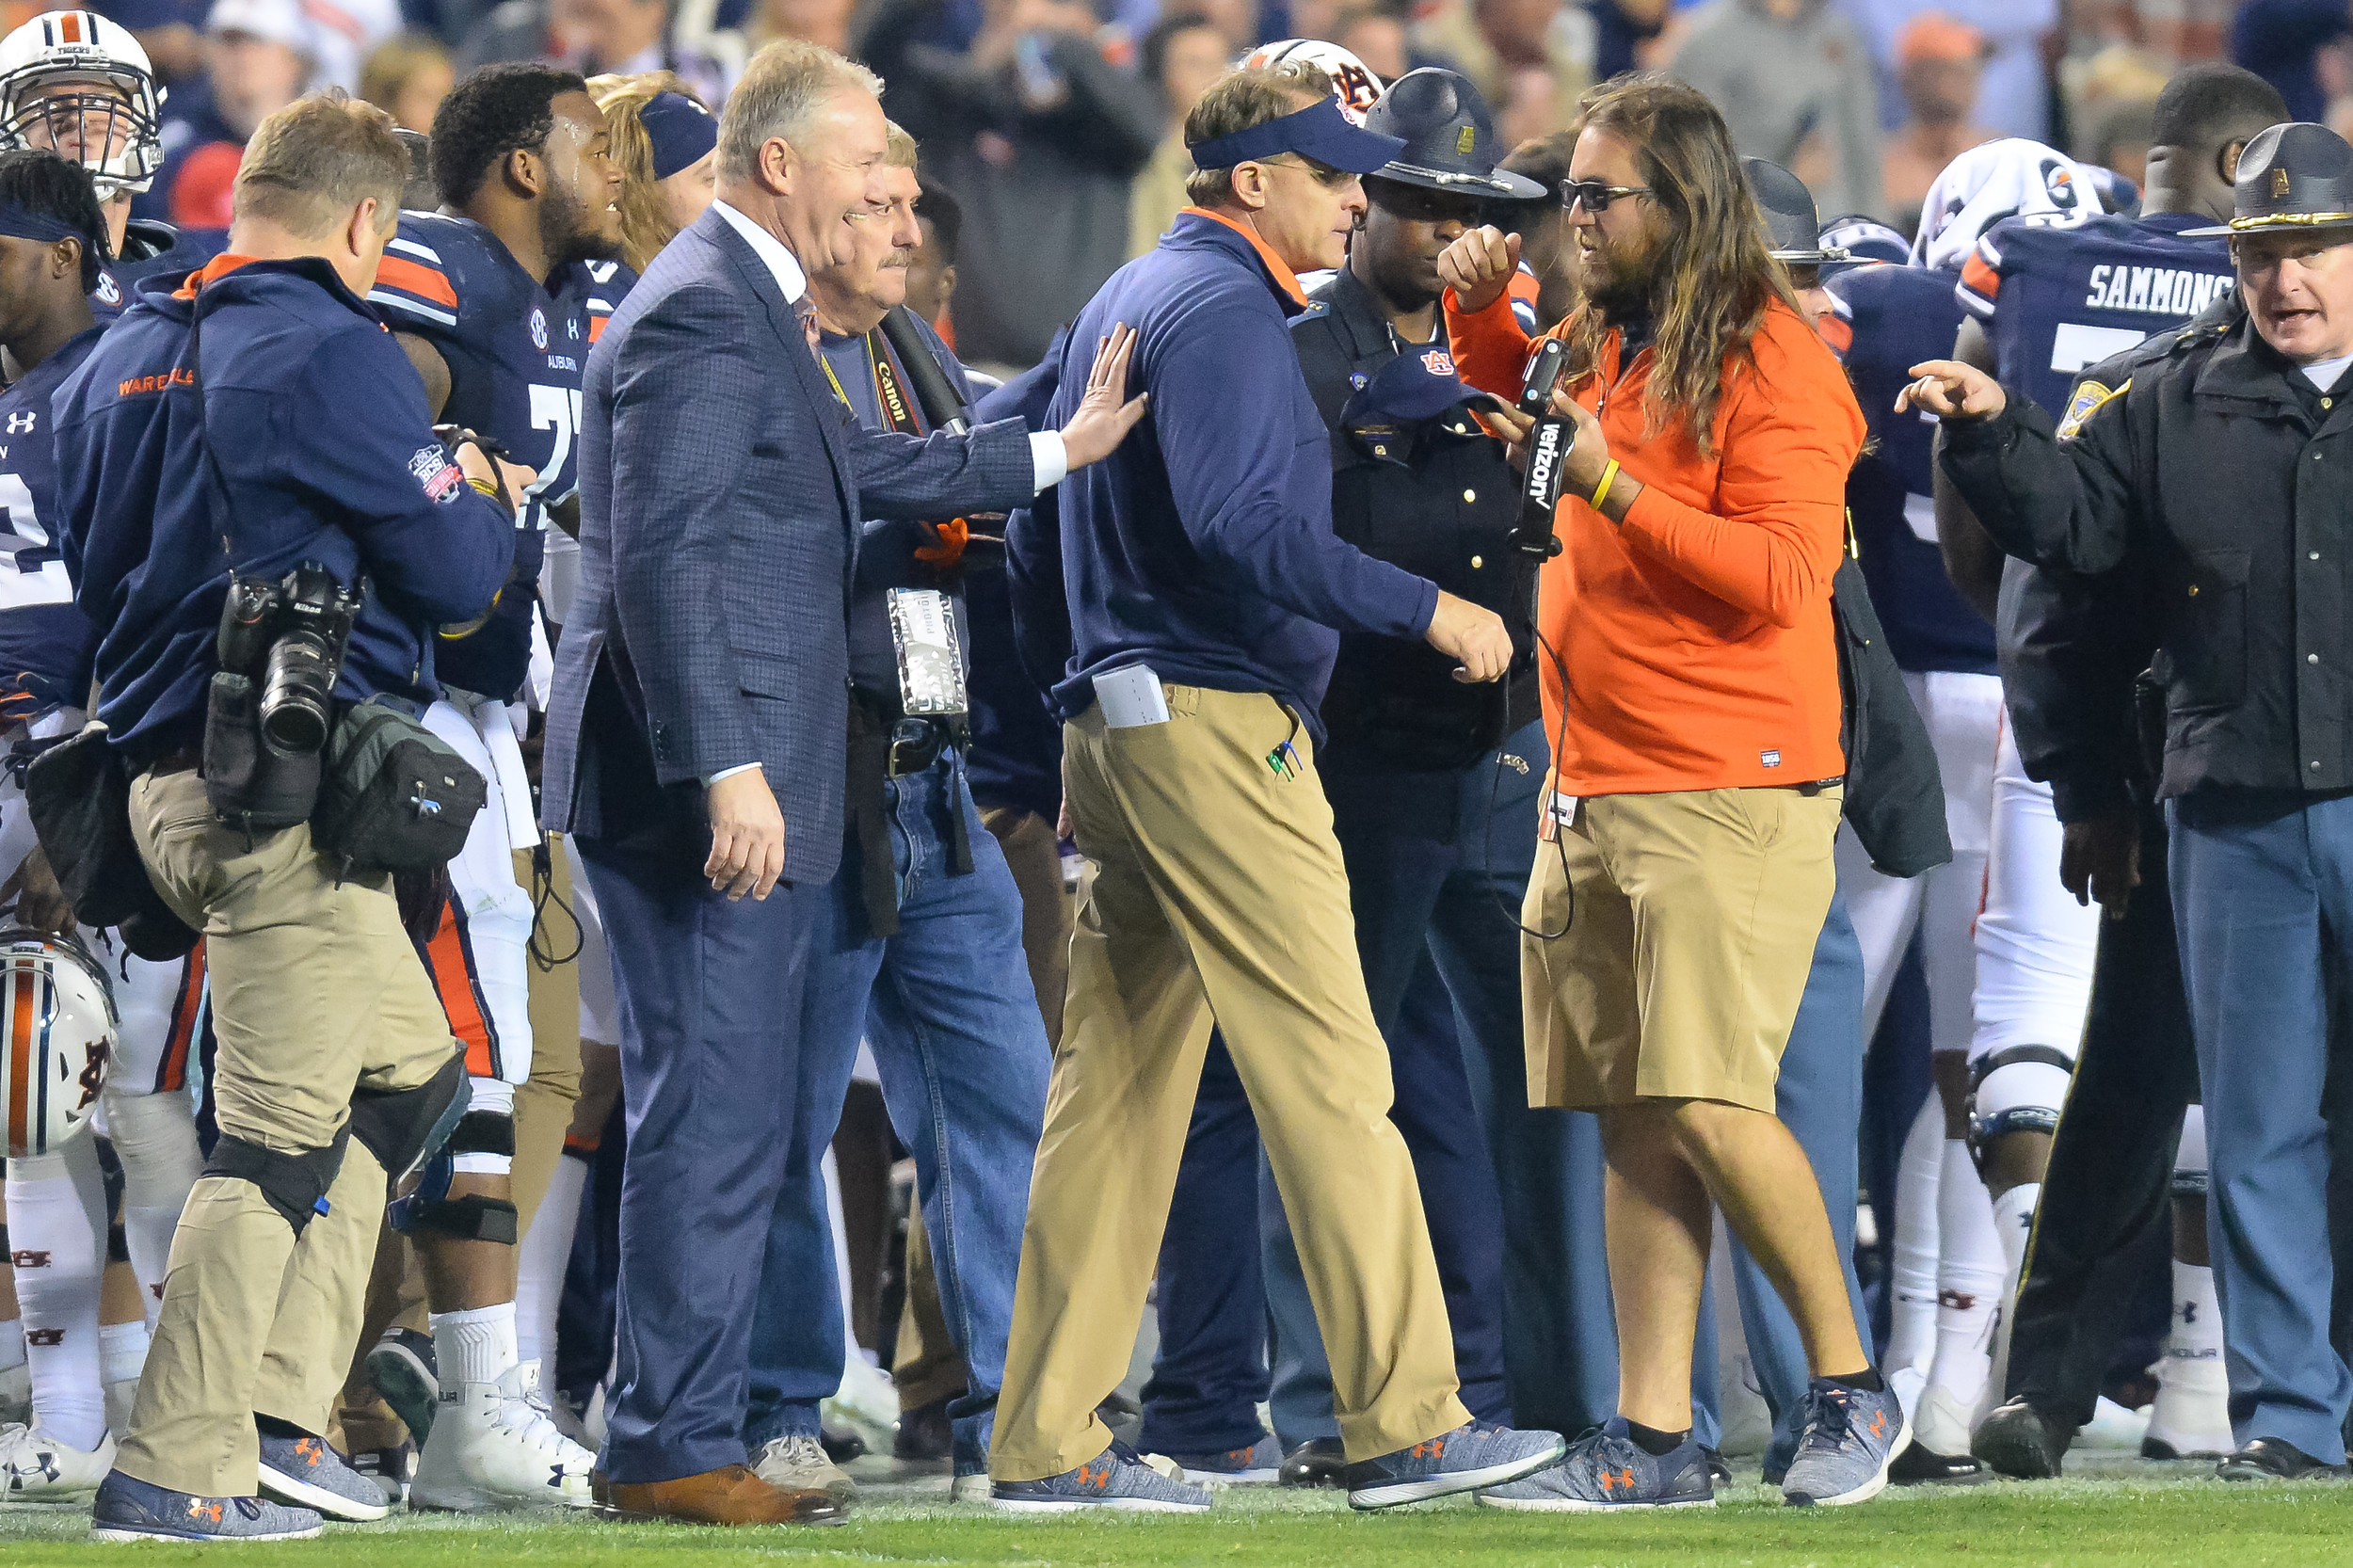 Auburn Atletic director Jay Jacobs congratulates Auburn Tigers head coach Guz Malzahn during the final seconds  of Saturday's game, at Jordan-Hare Stadium.